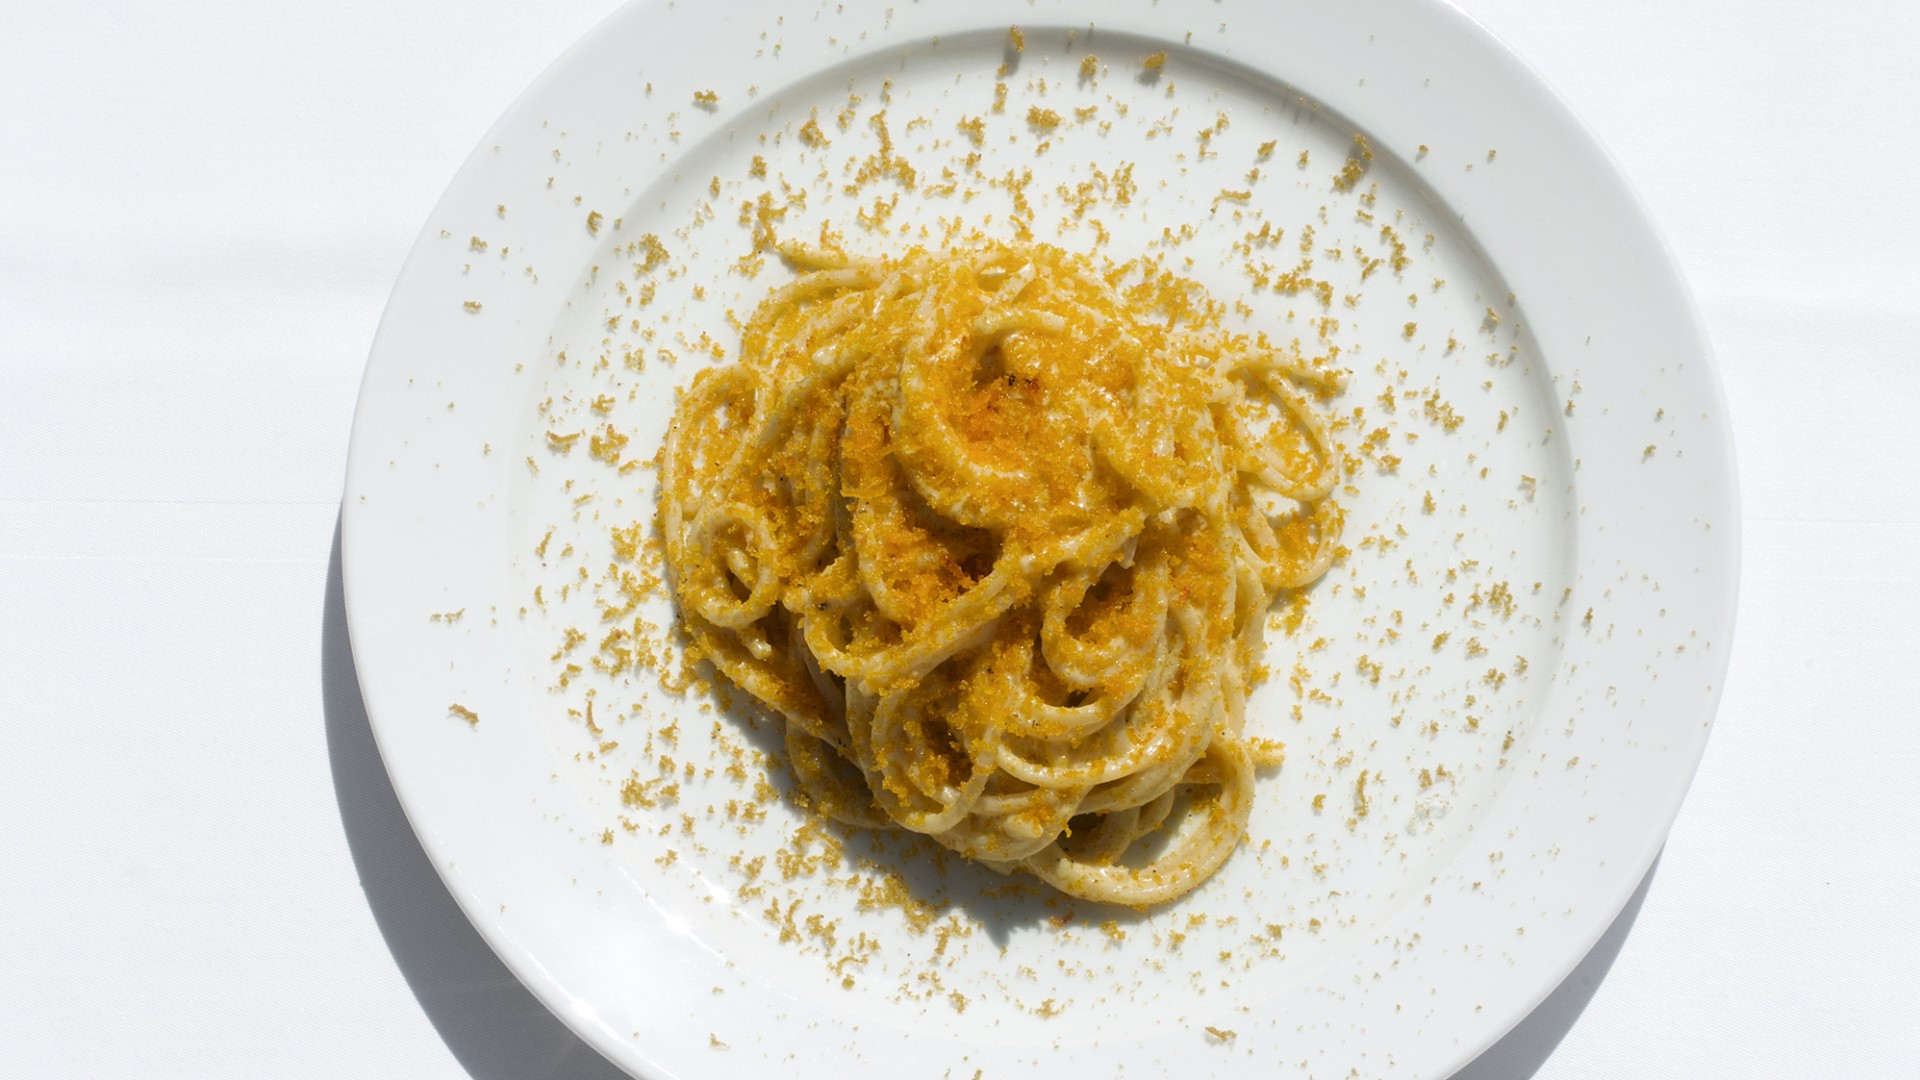 Spaghetti bottarga at The River Café